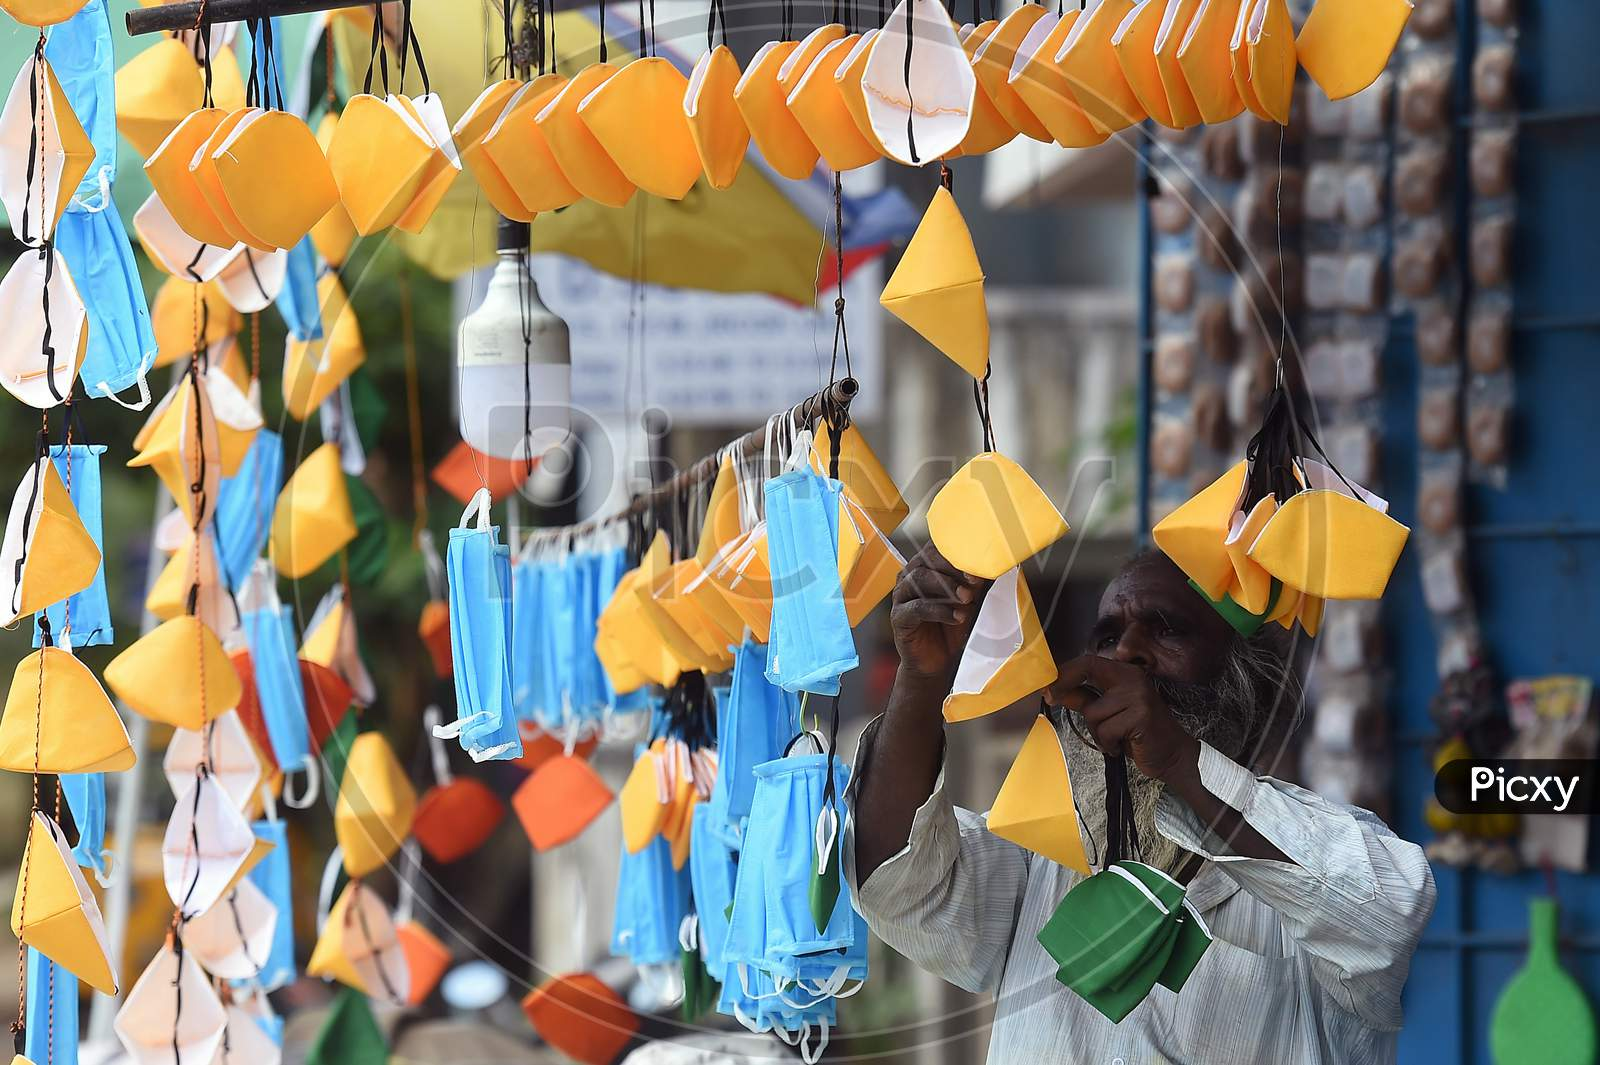 A Salesman Sells Masks At AShopDuring The Ongoing Covid-19 Lockdown In Chennai